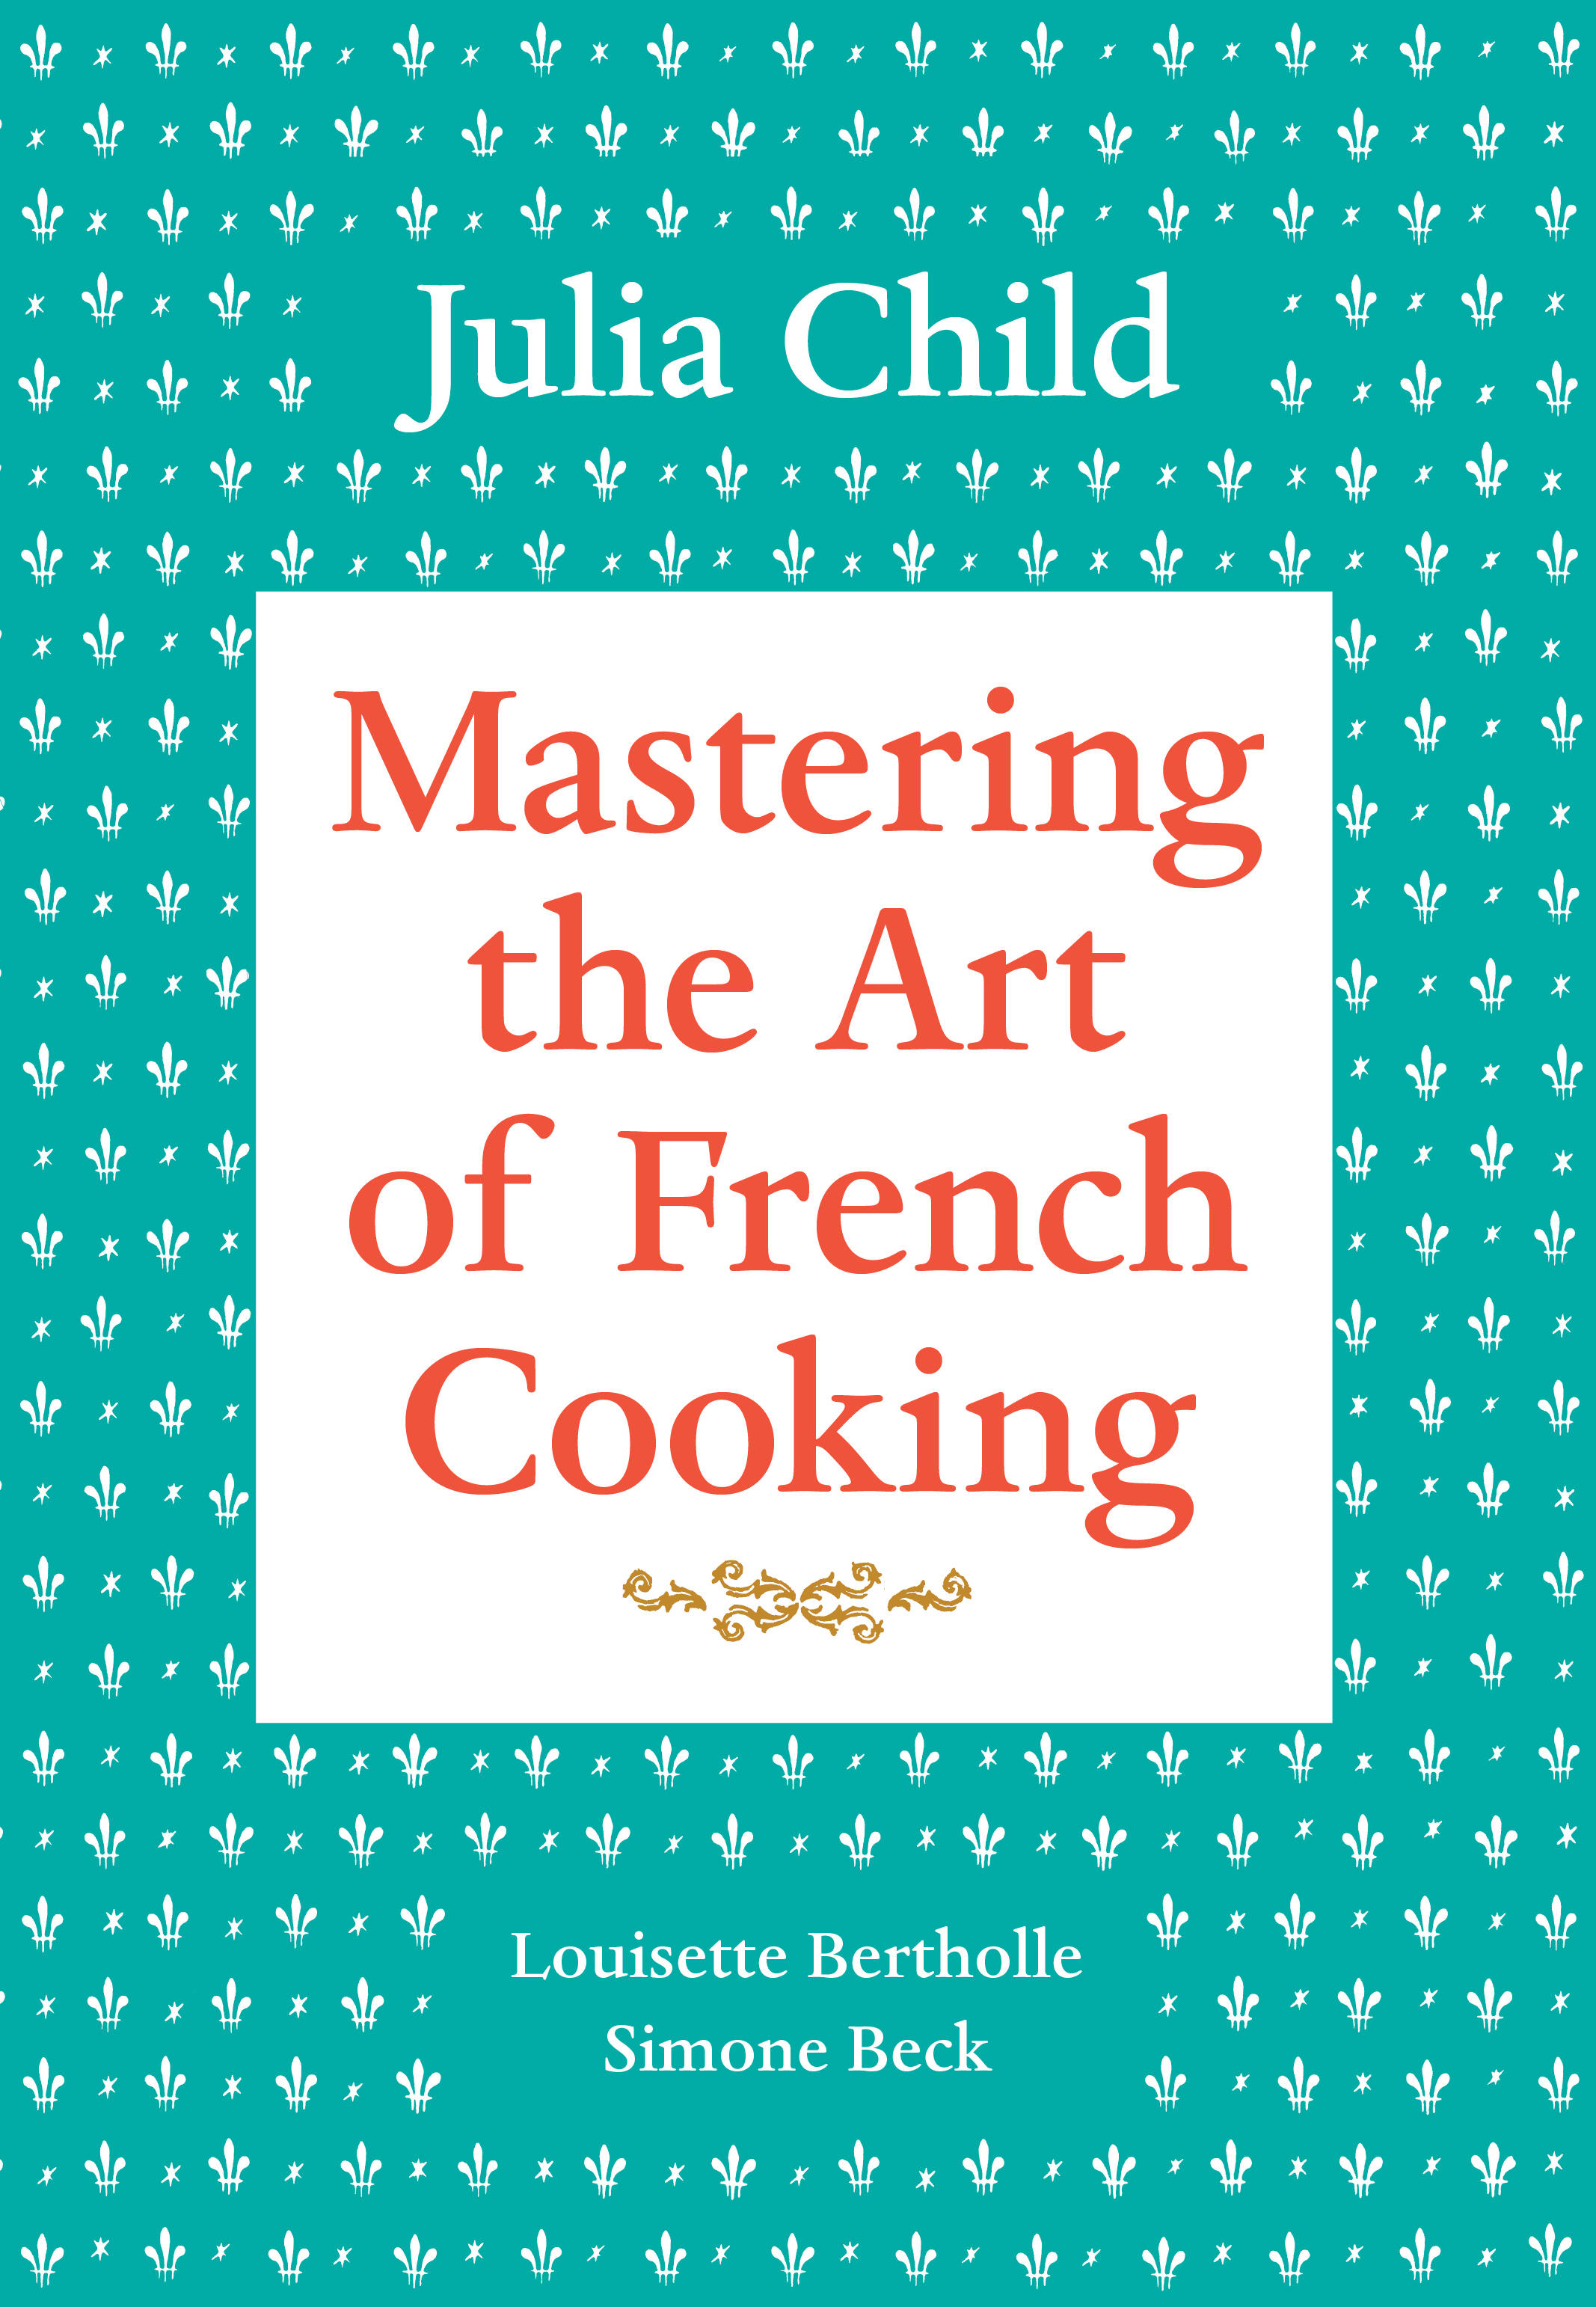 Comfort And Joy: Making The \'Morning Edition\' Julia Child ...